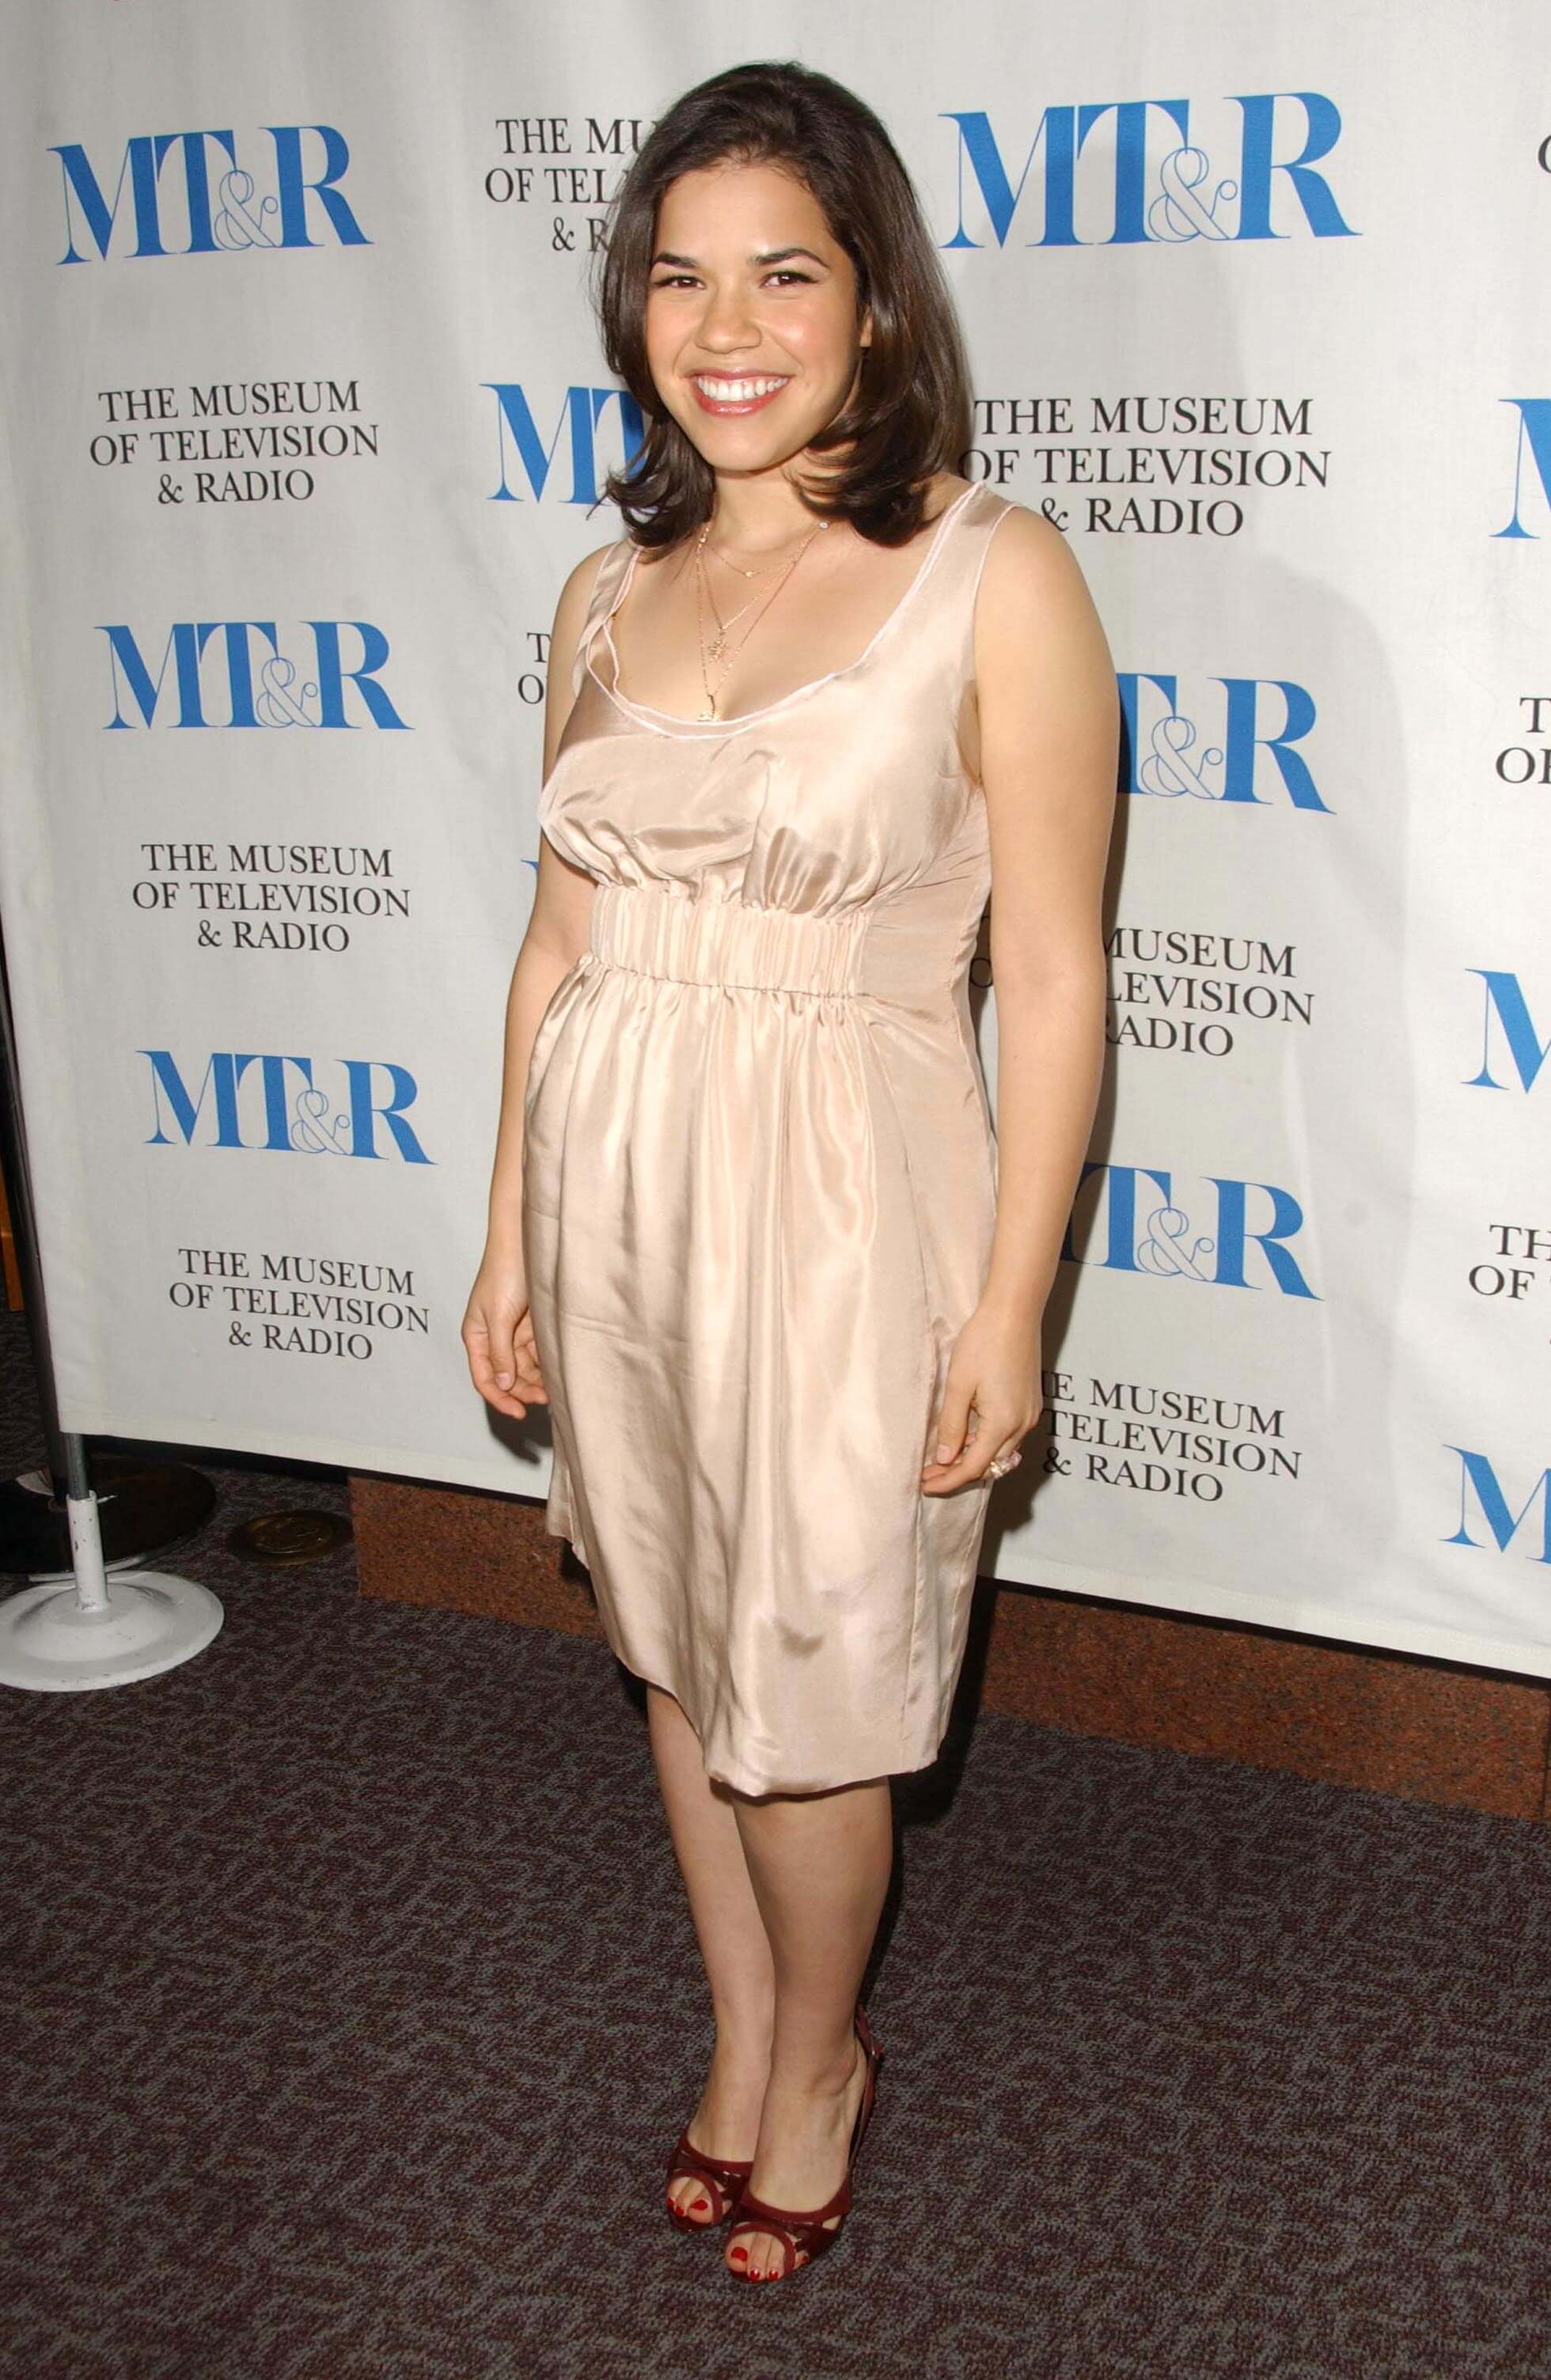 America Ferrera sexy photos dress